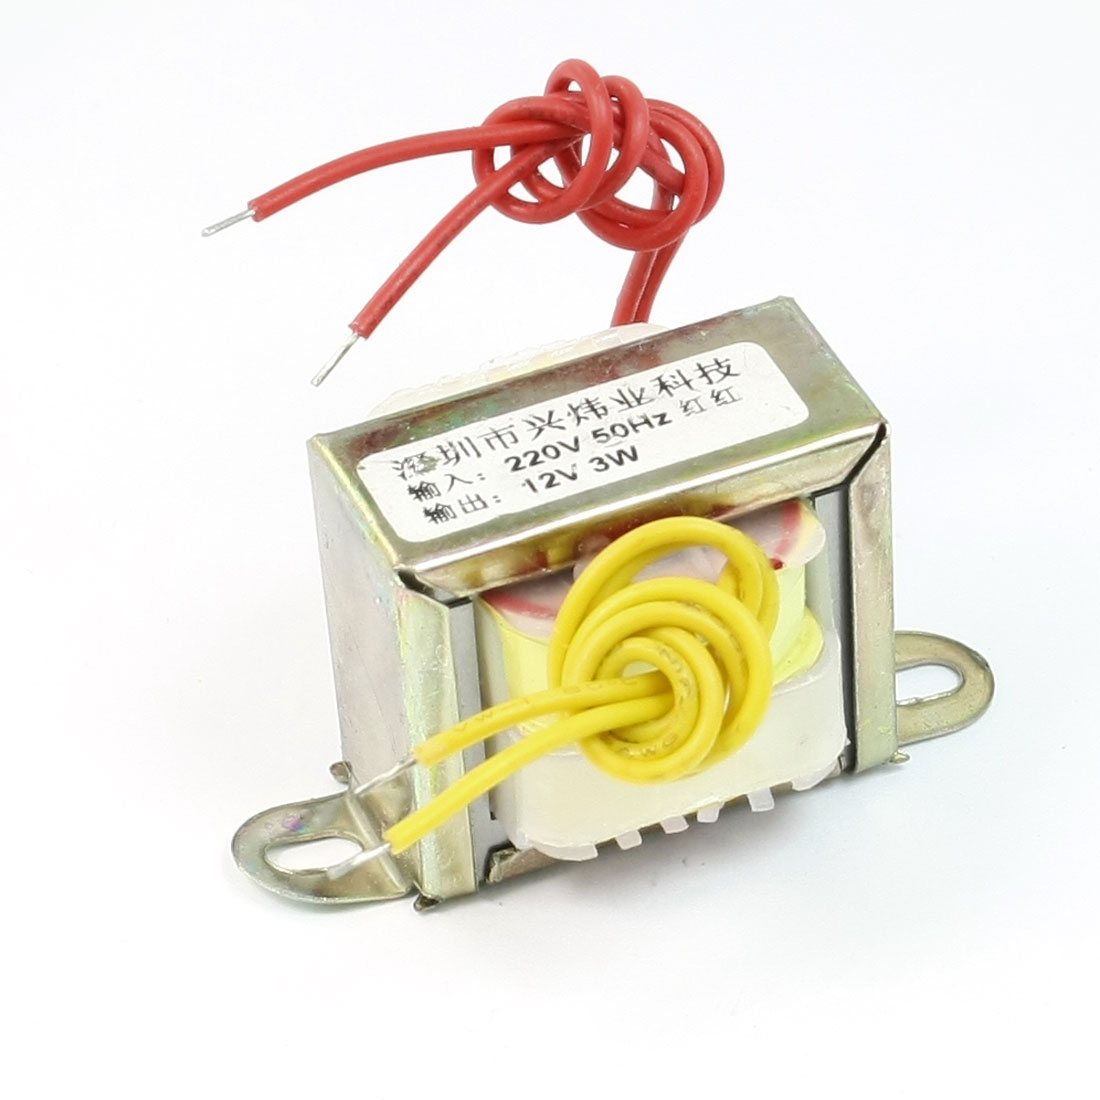 220V 50Hz Input to 12V 3W Output EI Core Single Phase Power Transformer